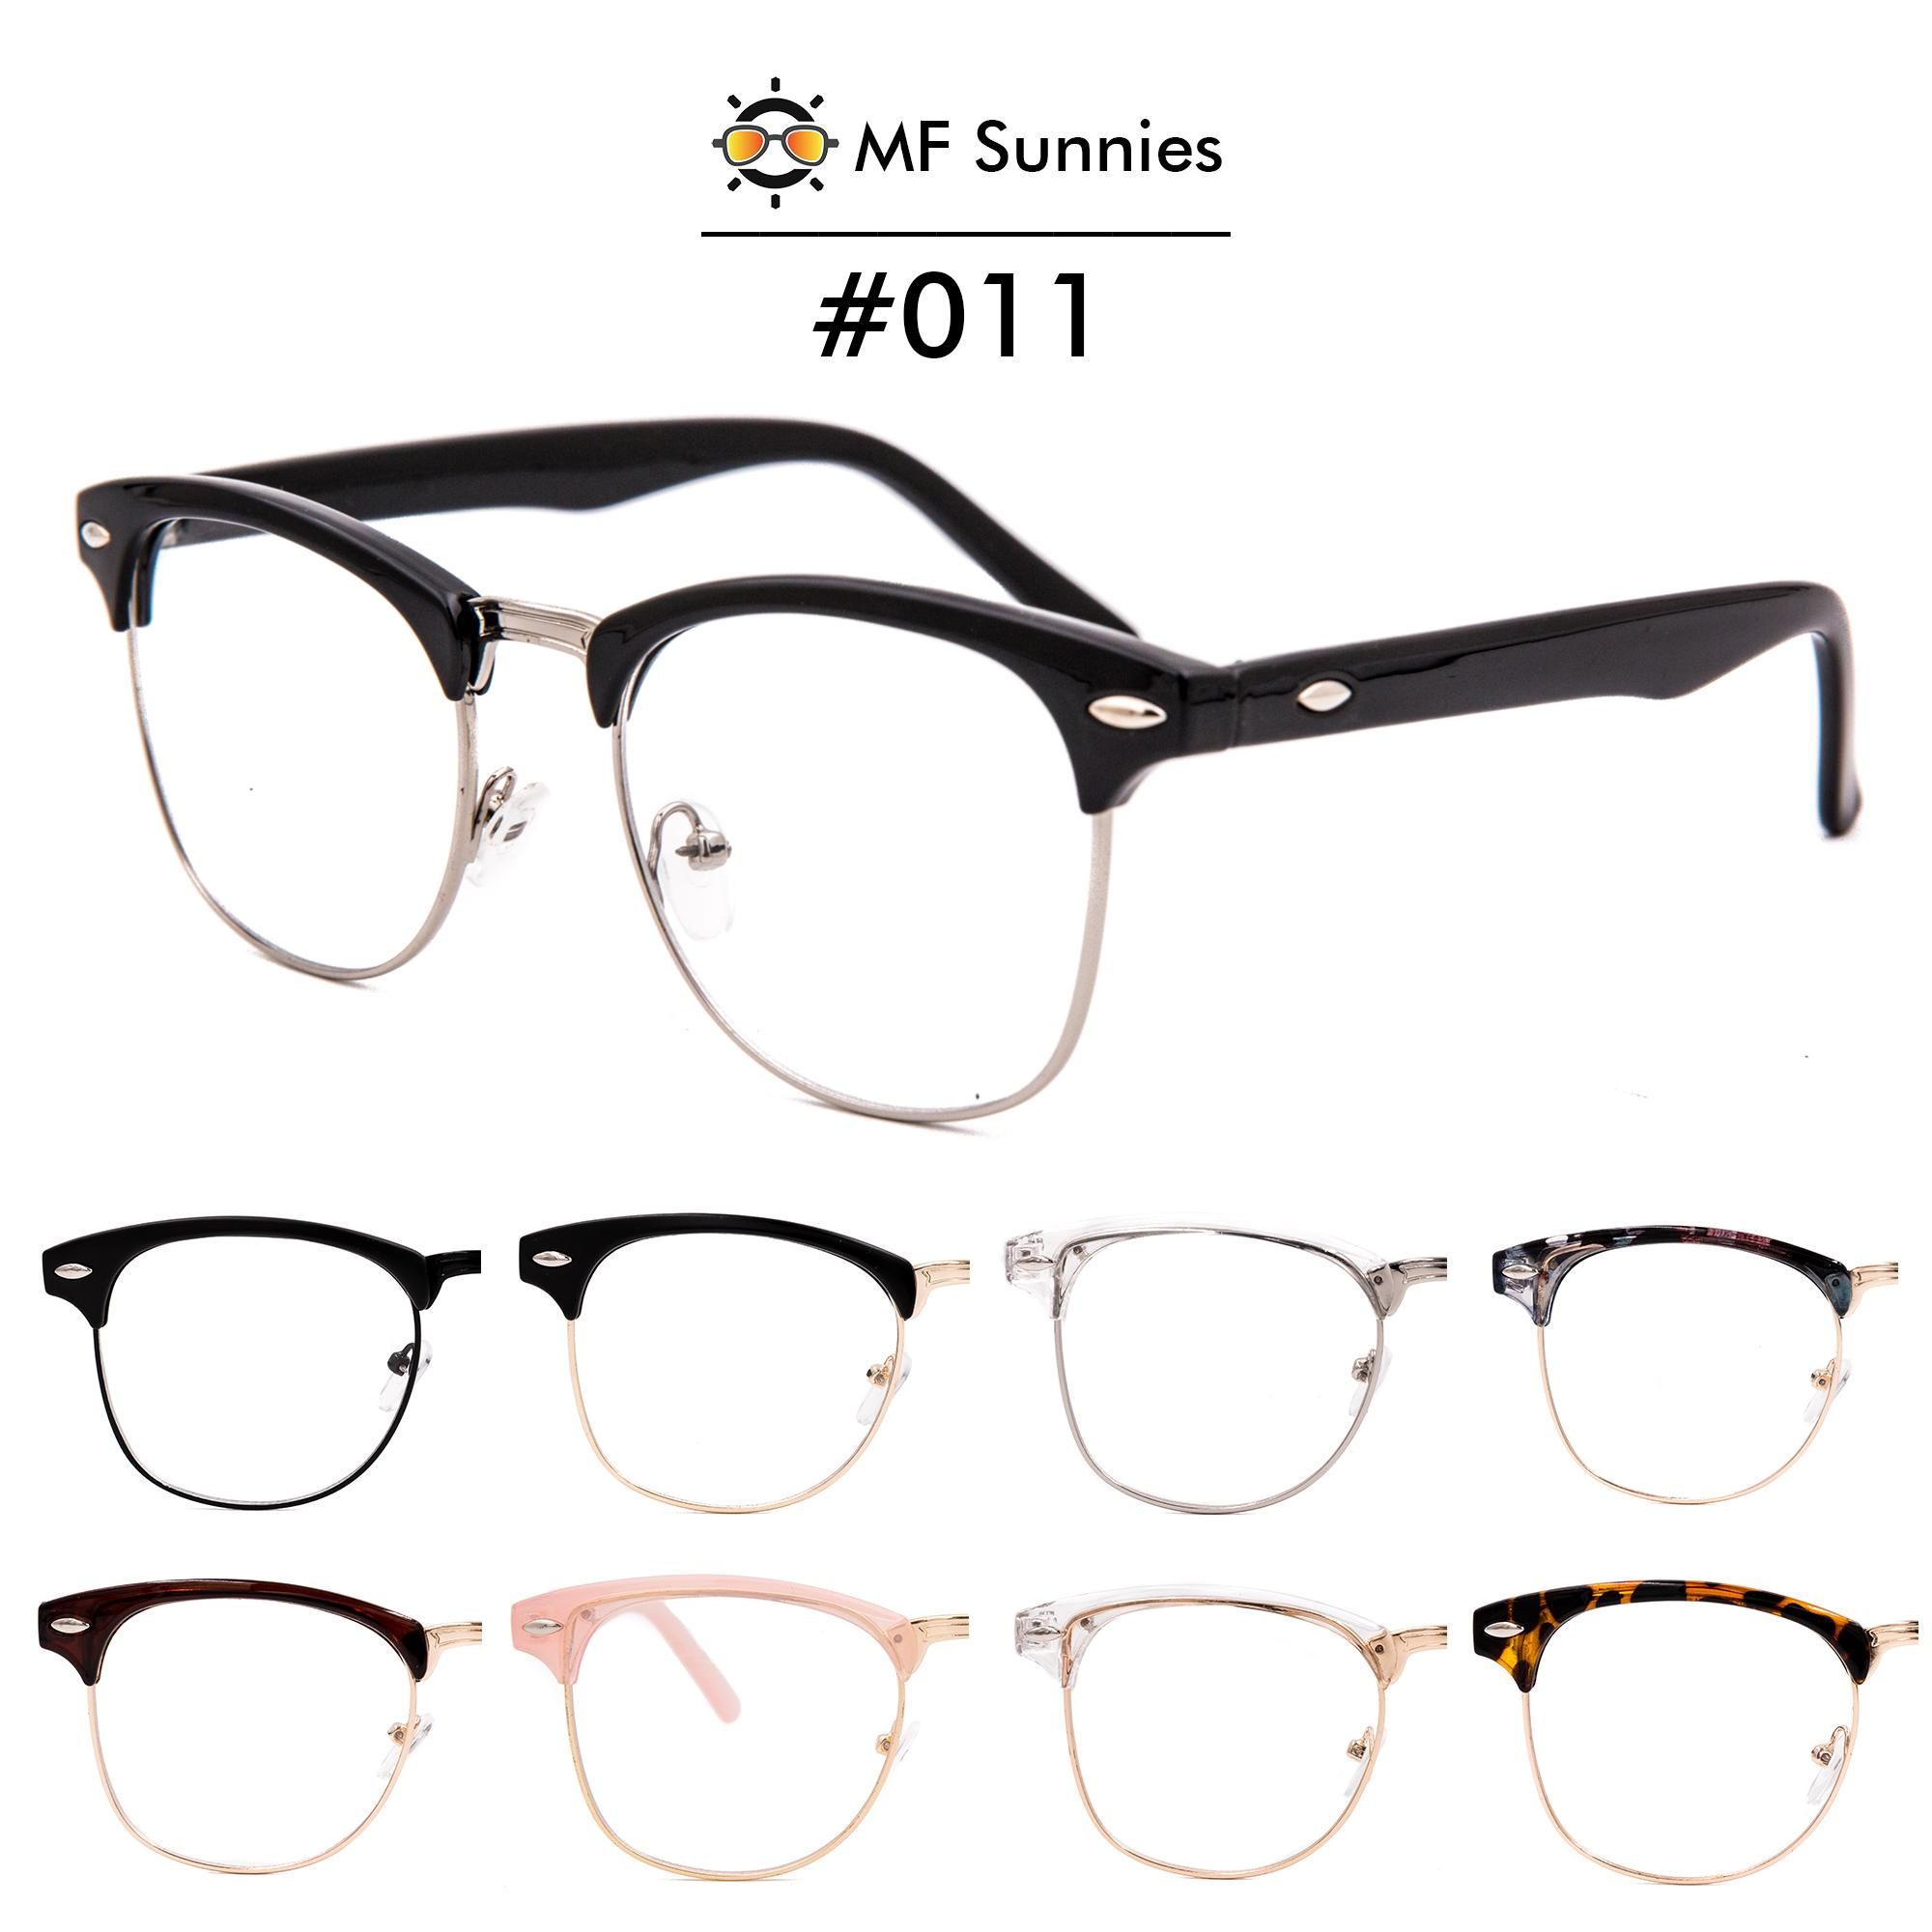 ad57d693ff Eyeglasses. Fashion glasses. Fashion glasses. Fashion glasses. Fashion  glasses. Fashion glasses